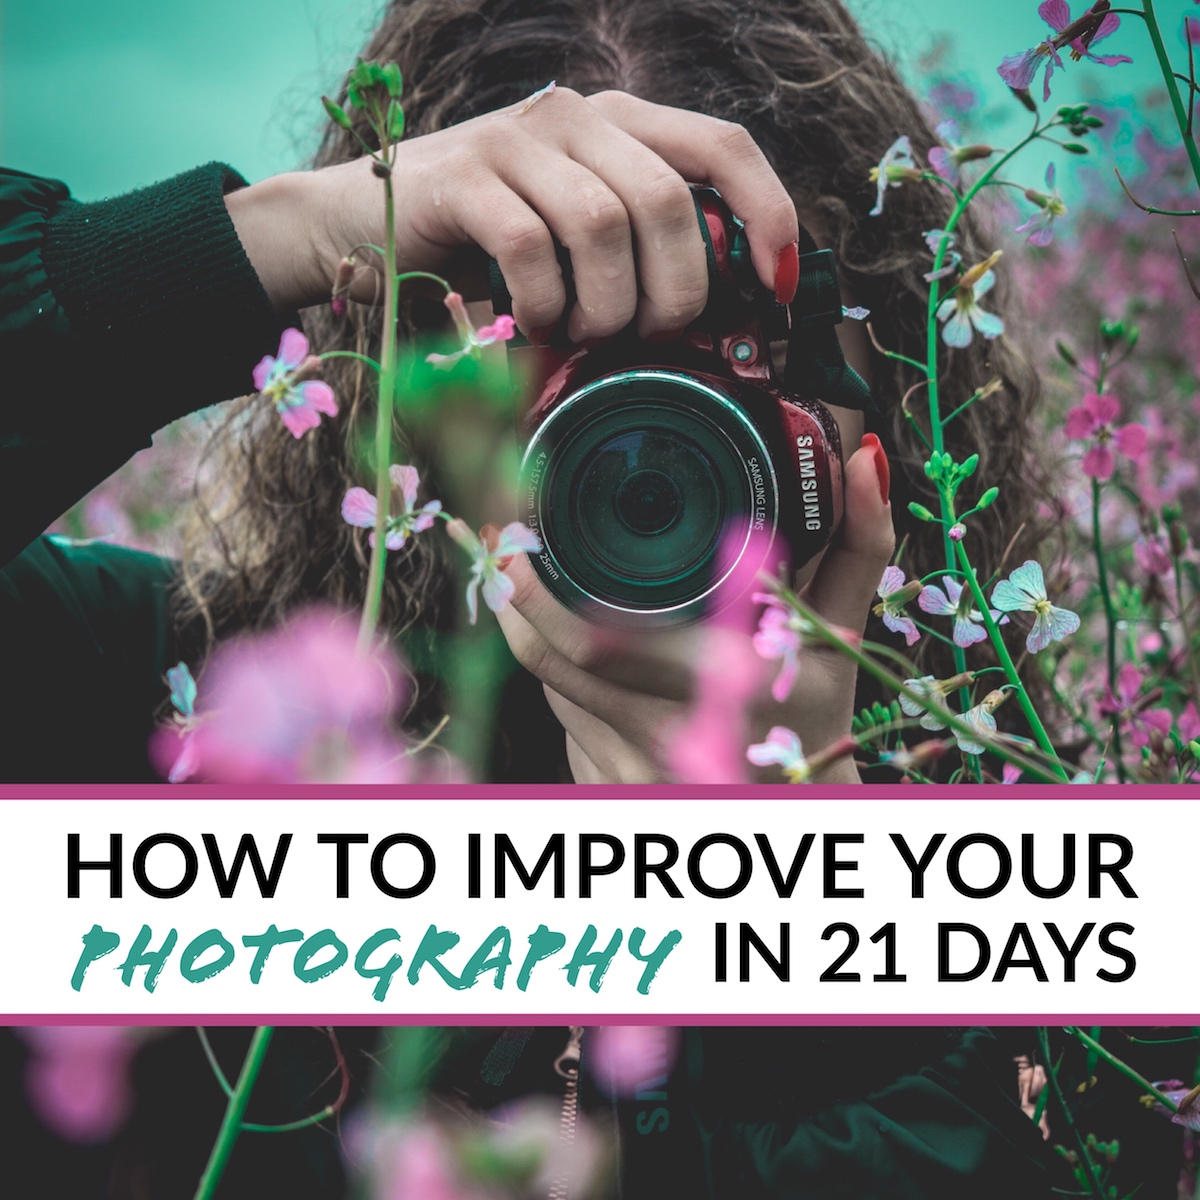 How to Improve your Photography in 21 Days